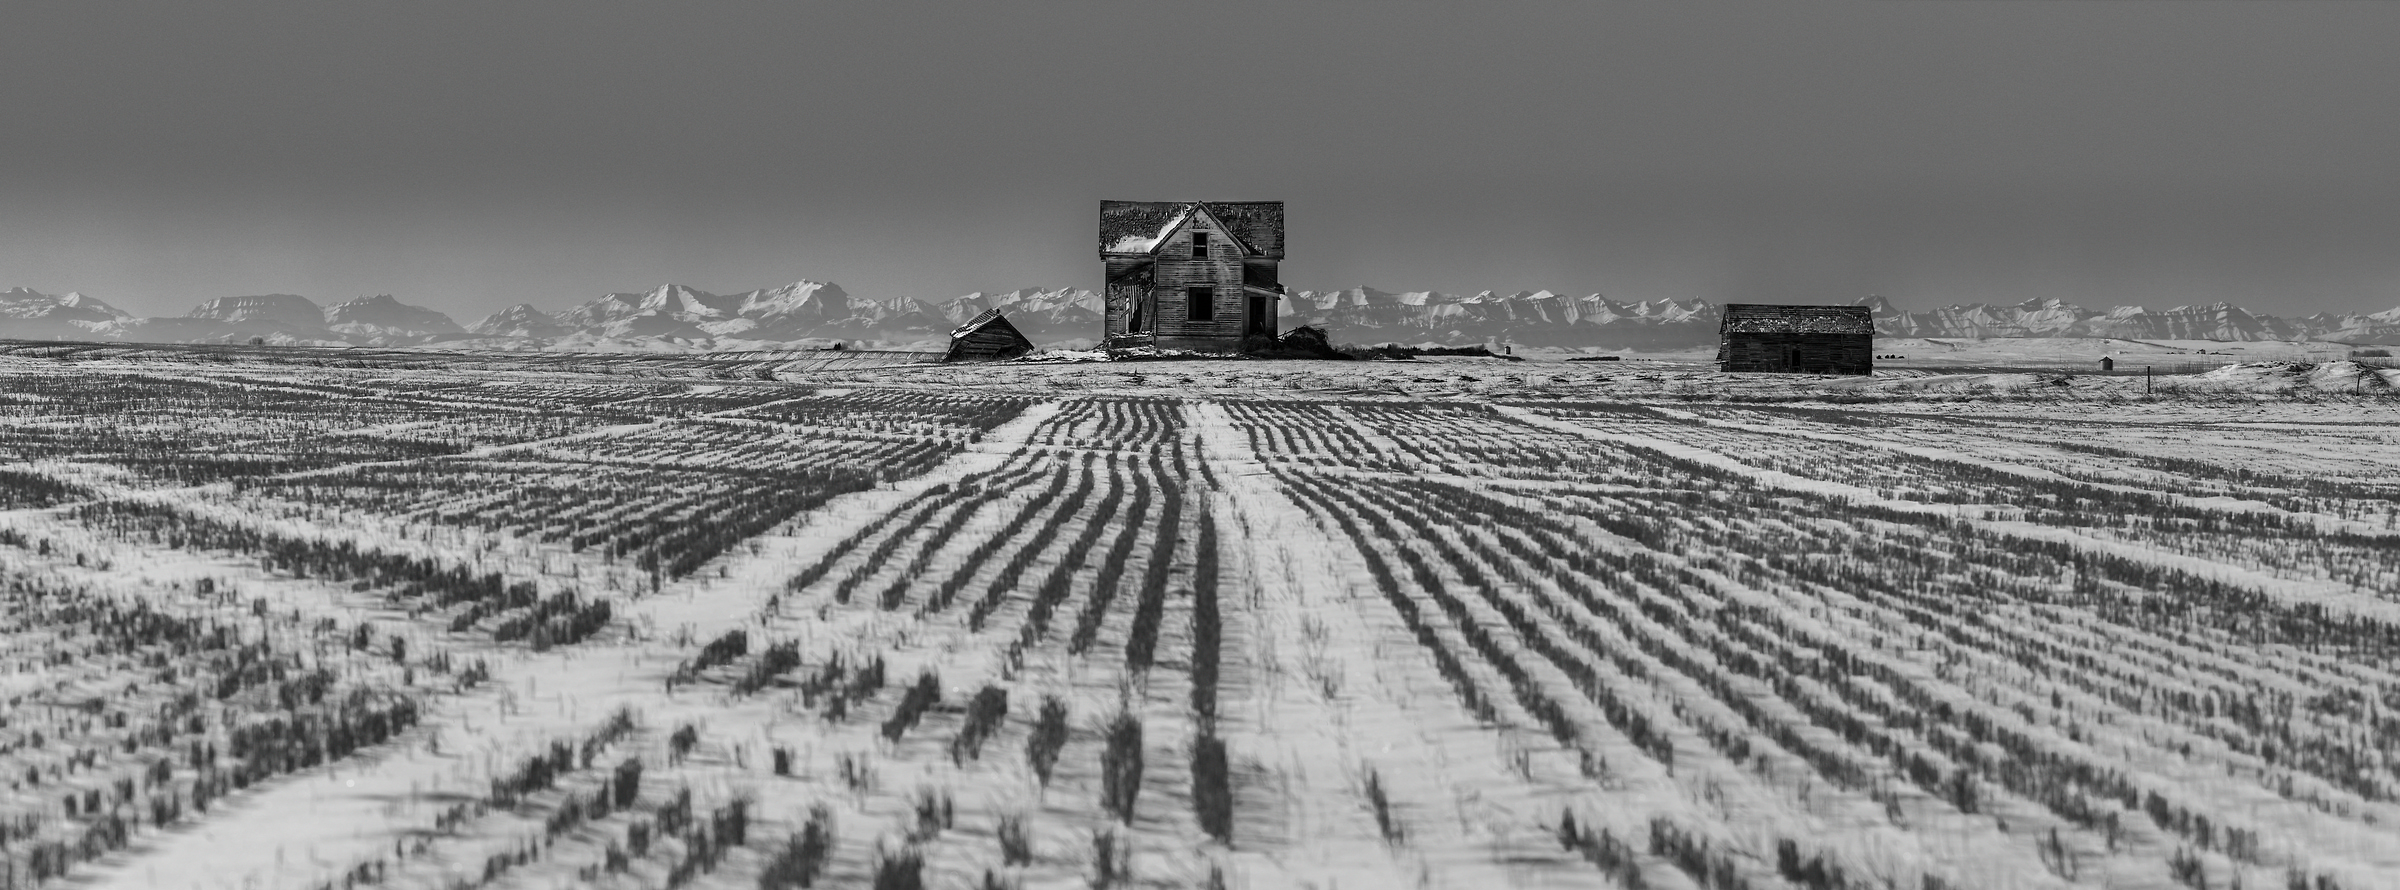 1,052 megapixels! A very high resolution, large-format VAST photo print of snow on a prairie with an abandoned house; black & white photograph created by Scott Dimond in Foothills County, Alberta, Canada